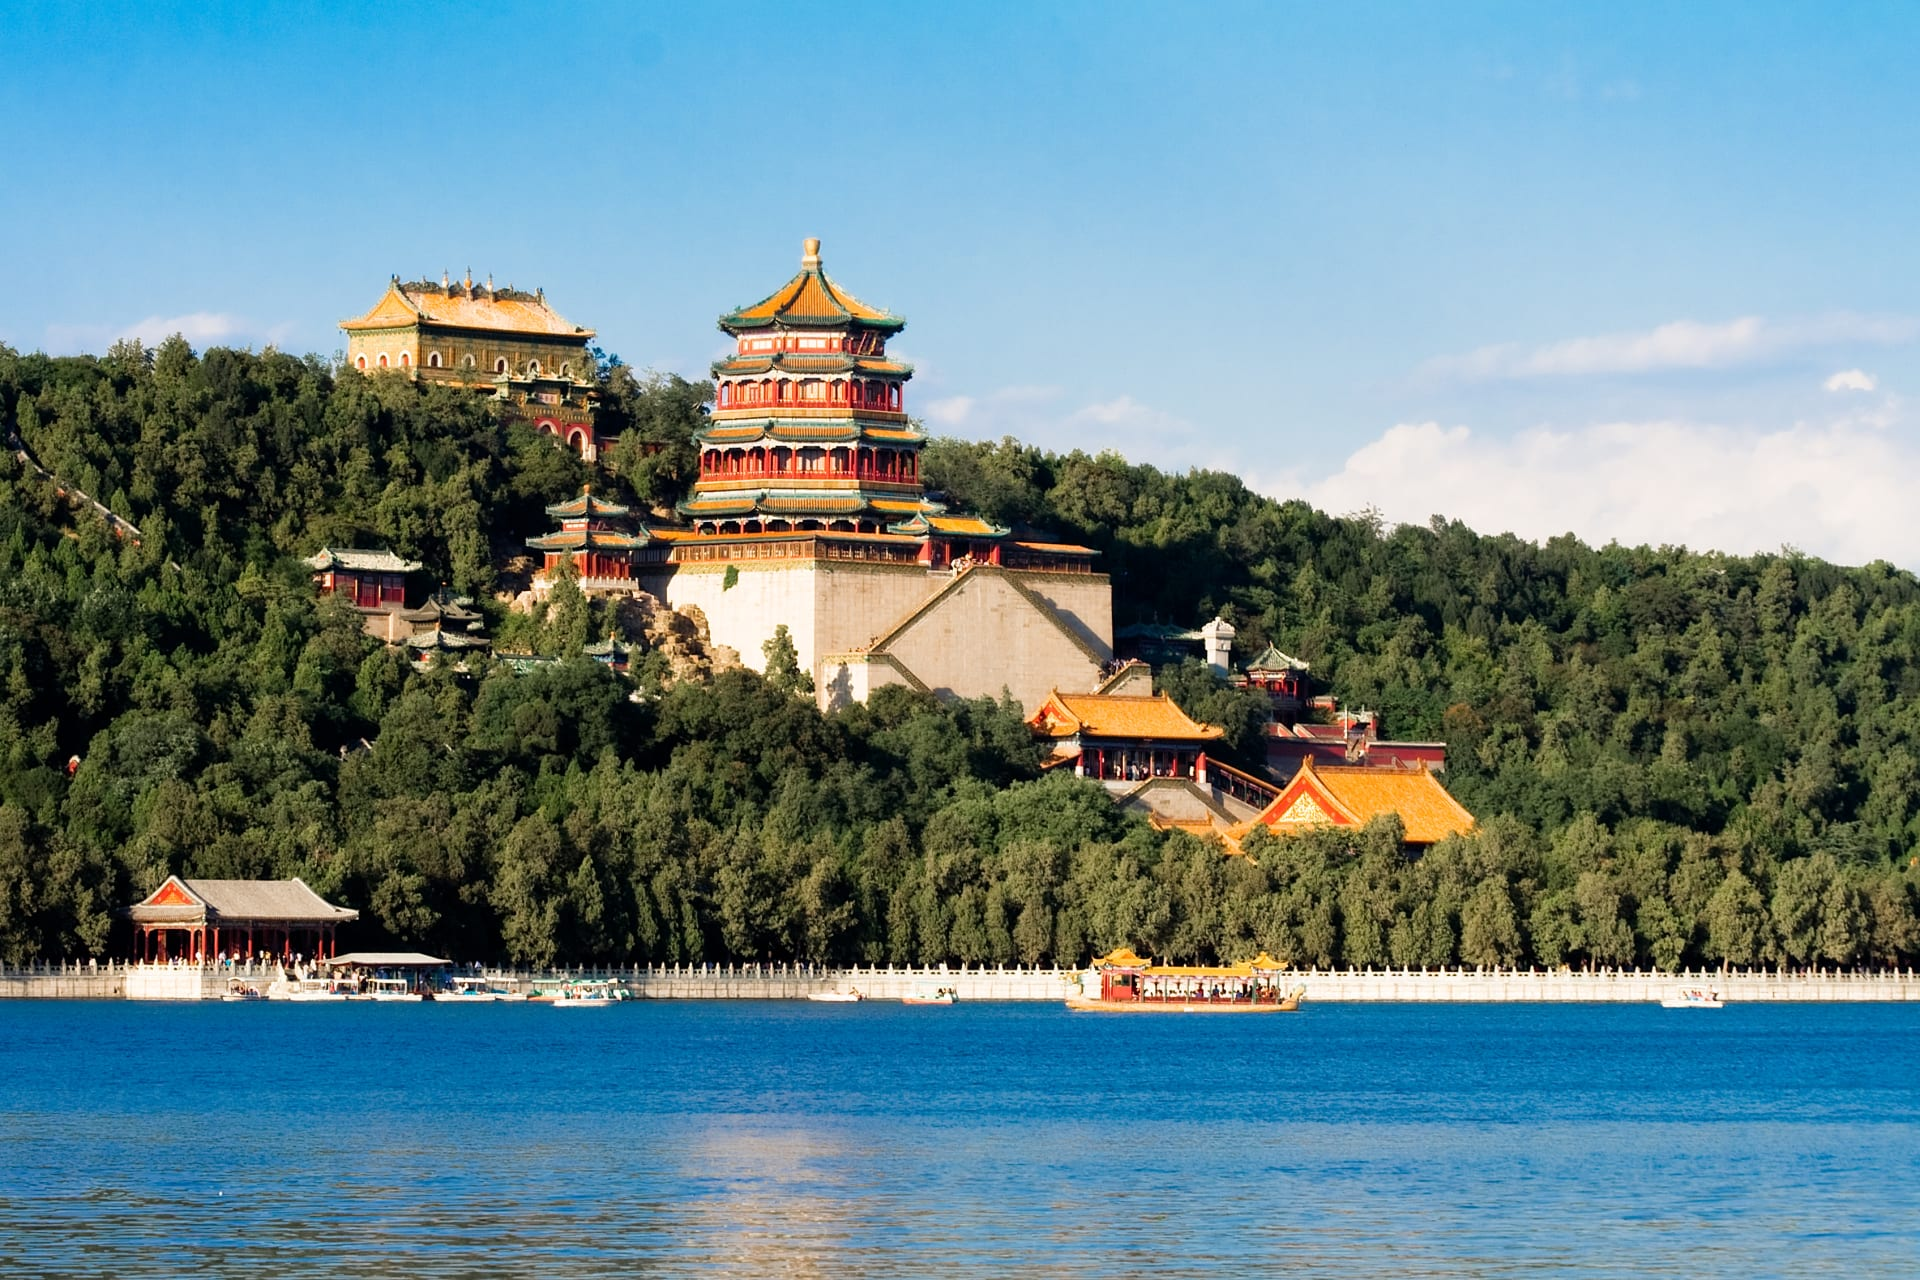 Beijing - Summer Palace: The Imperial Park